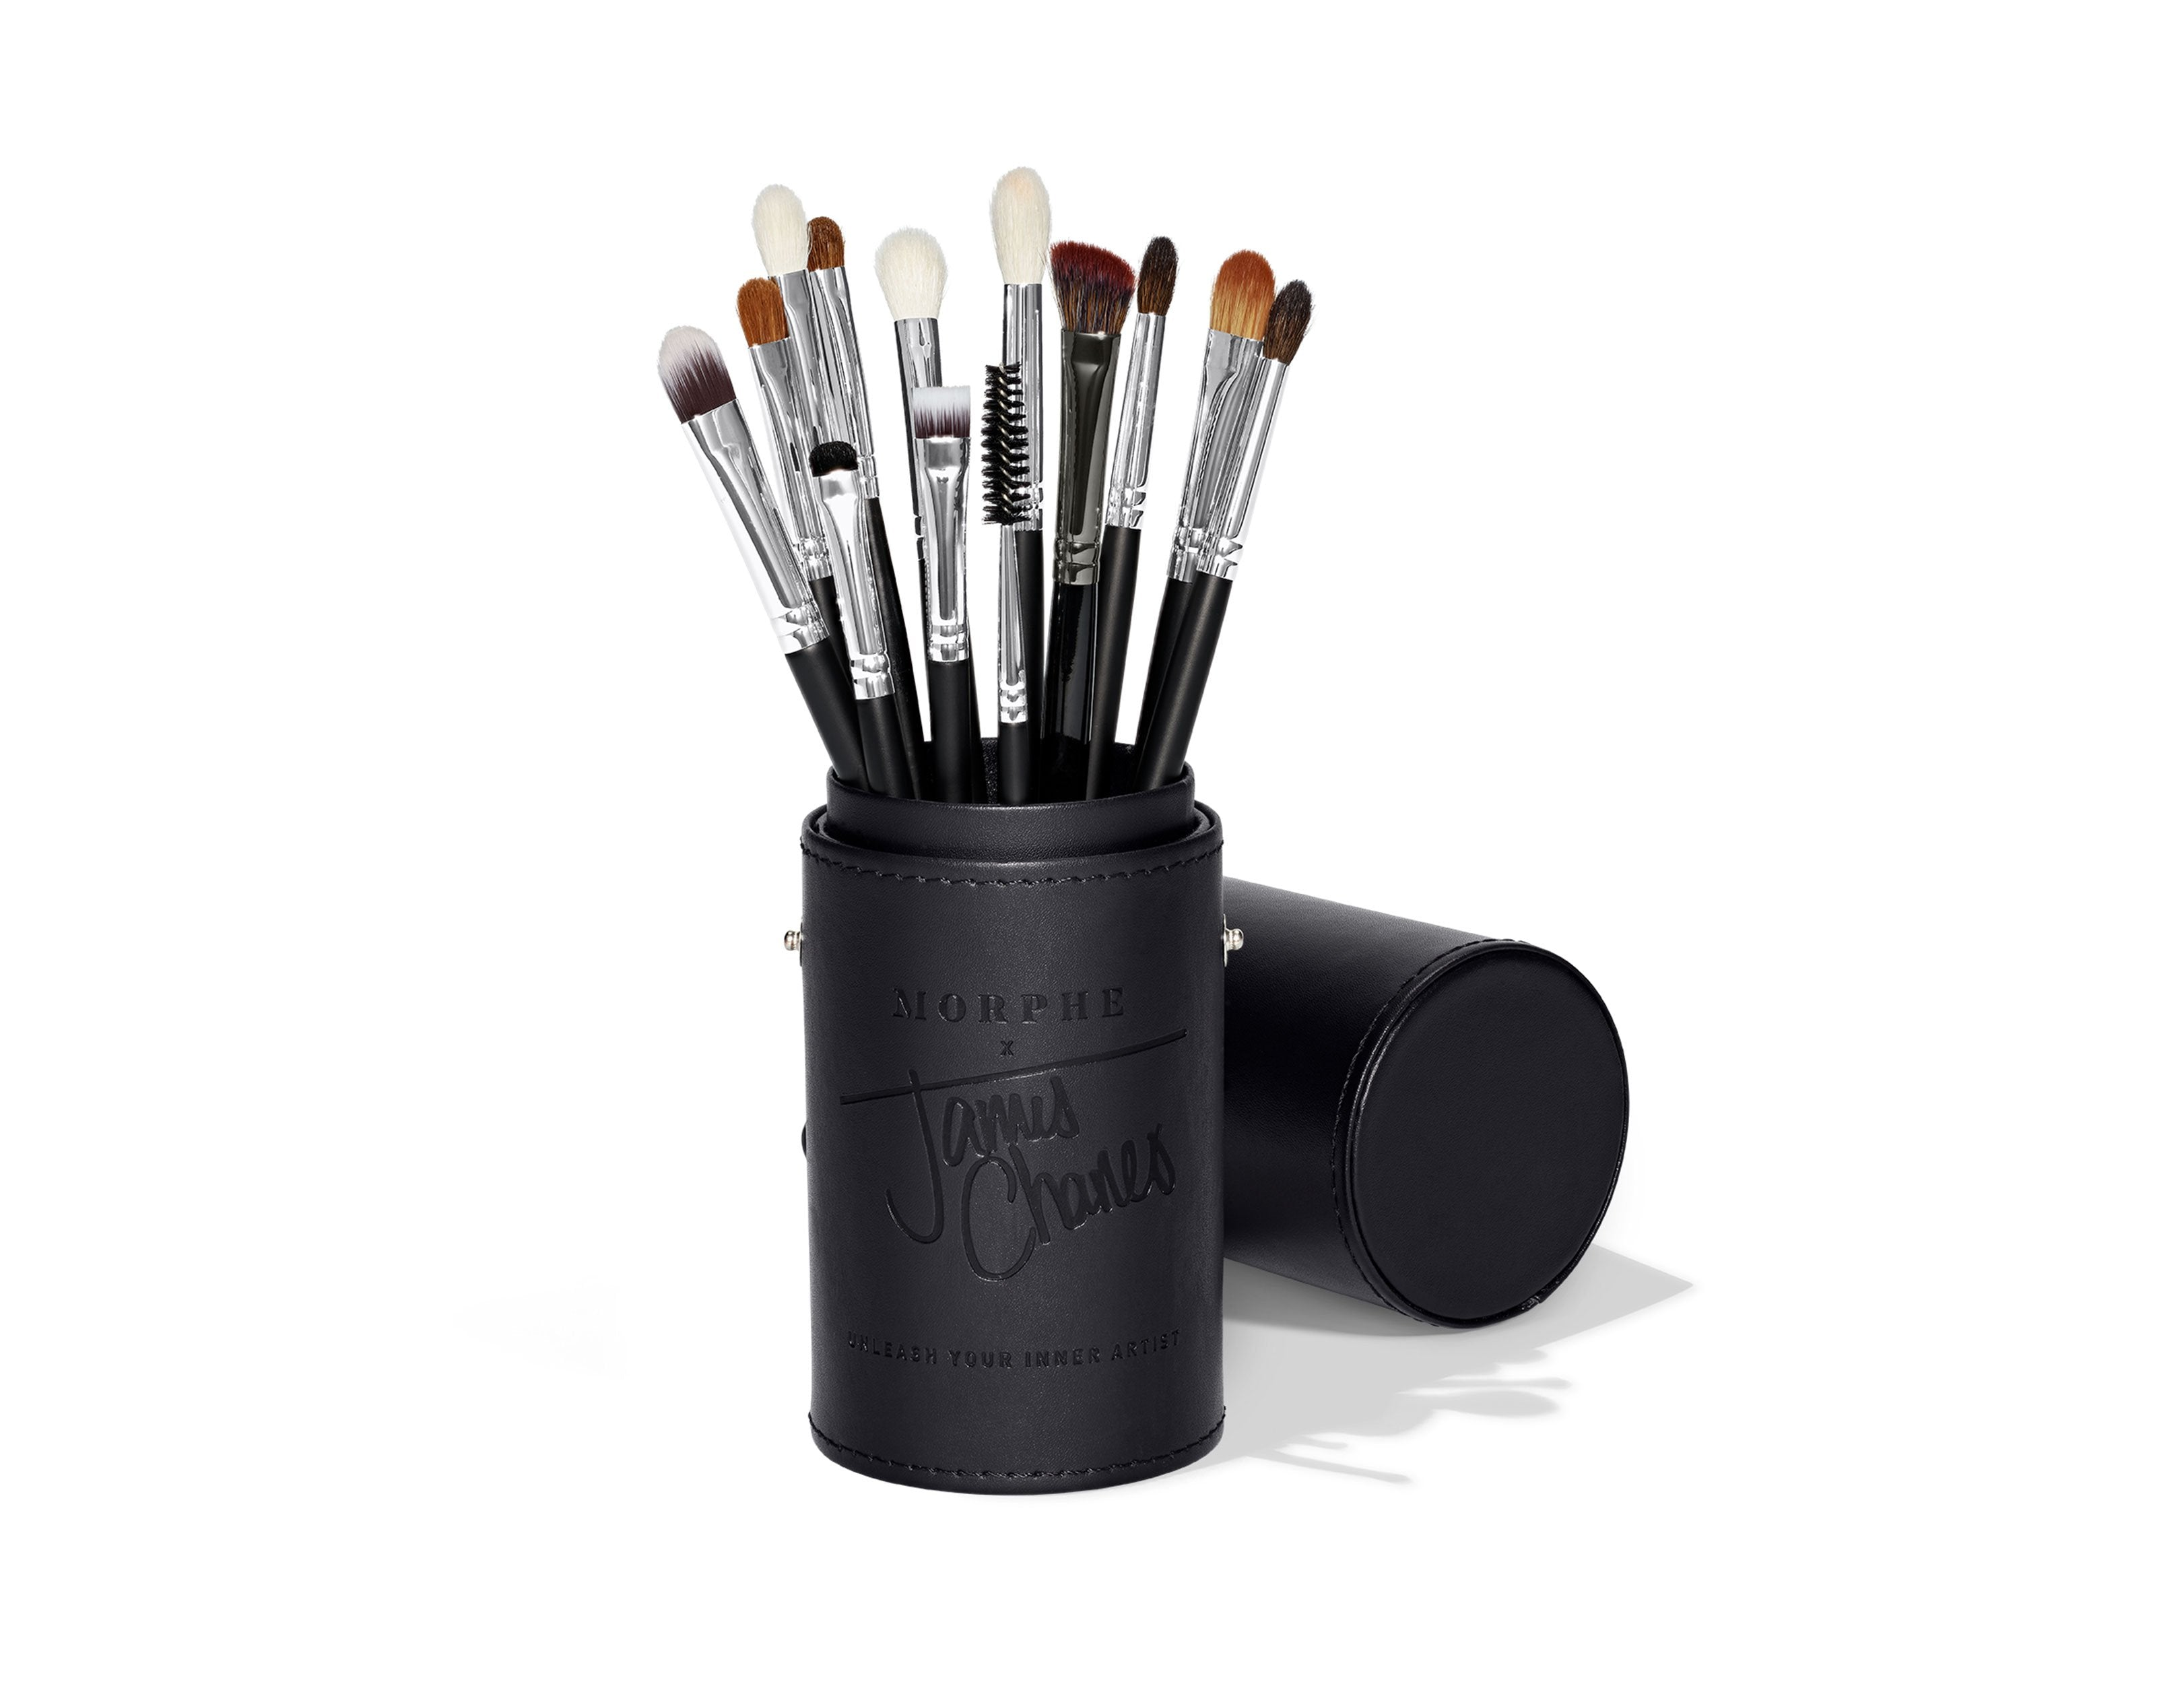 MORPHE X JAMES CHARLES THE EYE BRUSH SET, view larger image